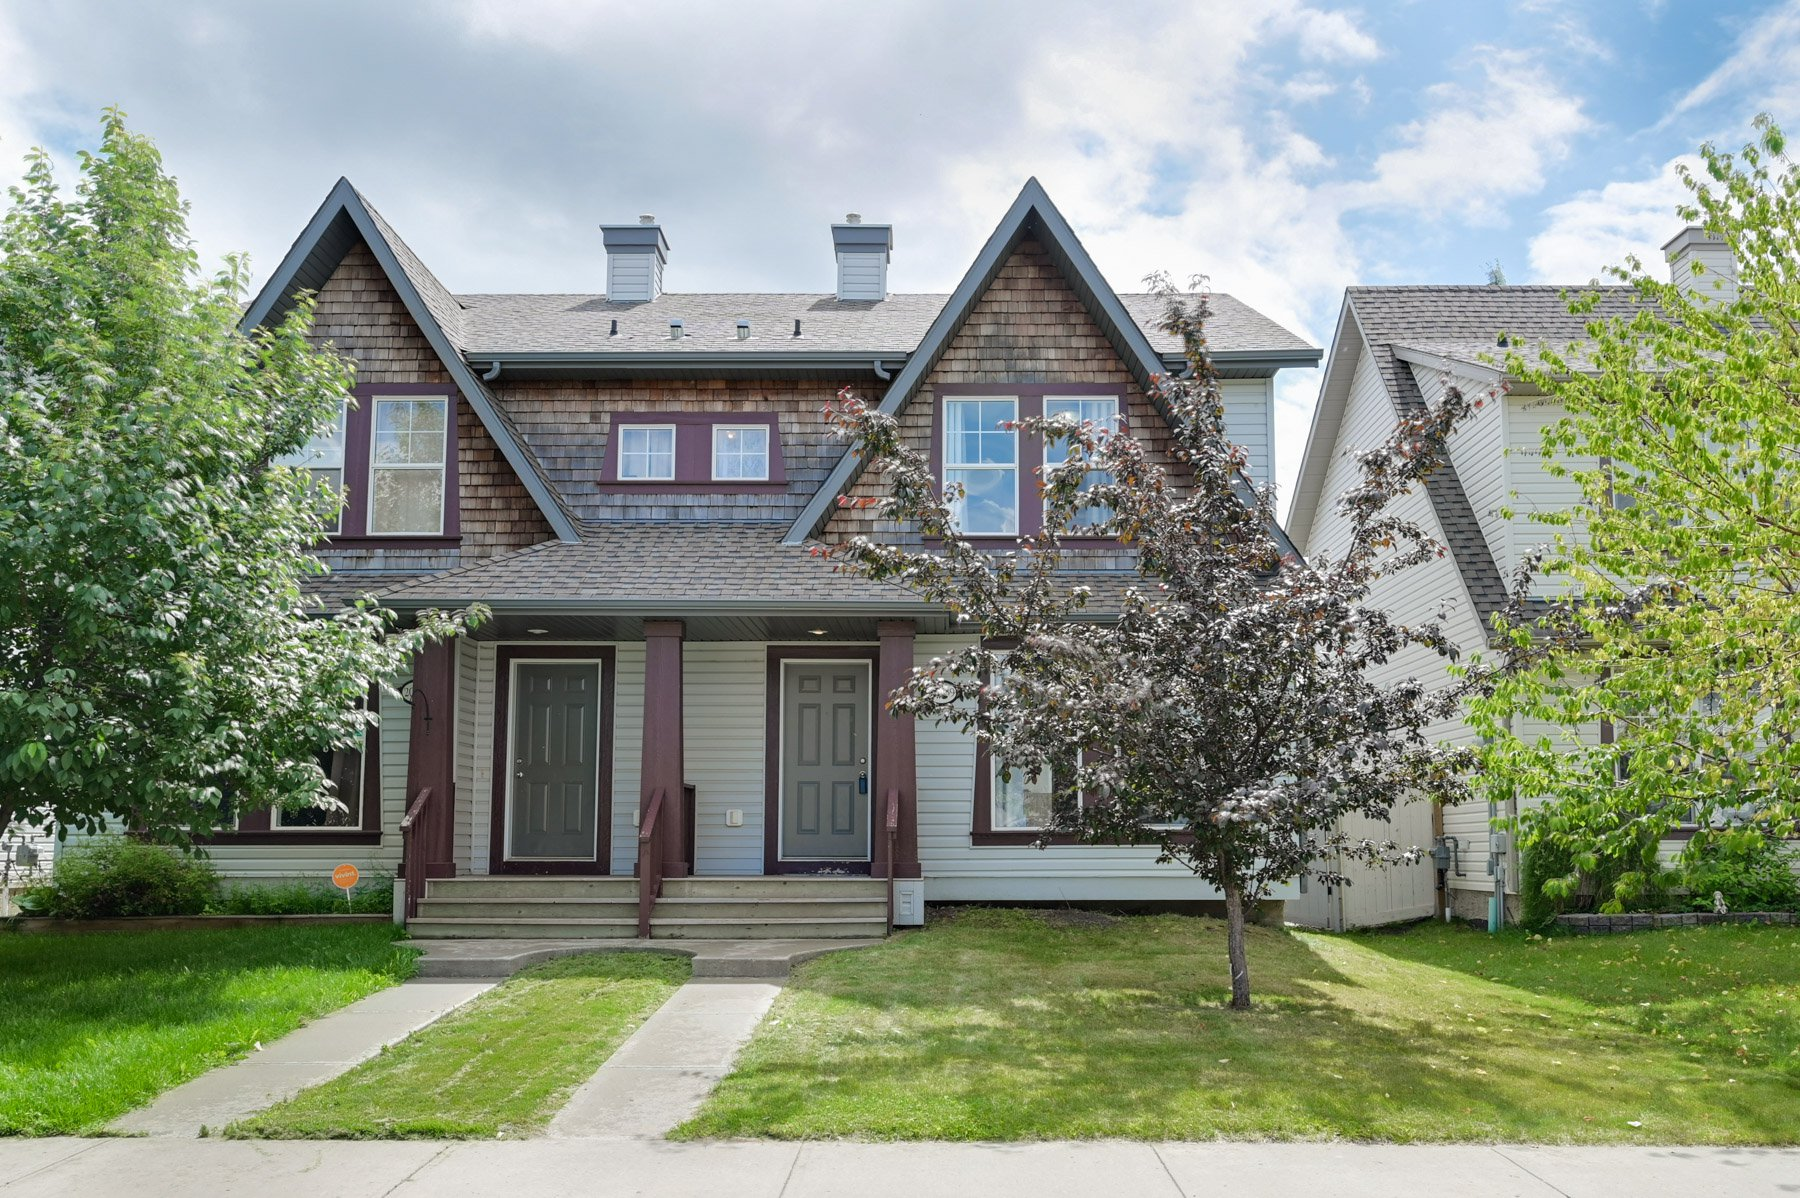 Main Photo: 20239 - 56 Avenue in Edmonton: Hamptons House Half Duplex for sale : MLS®# E4165567